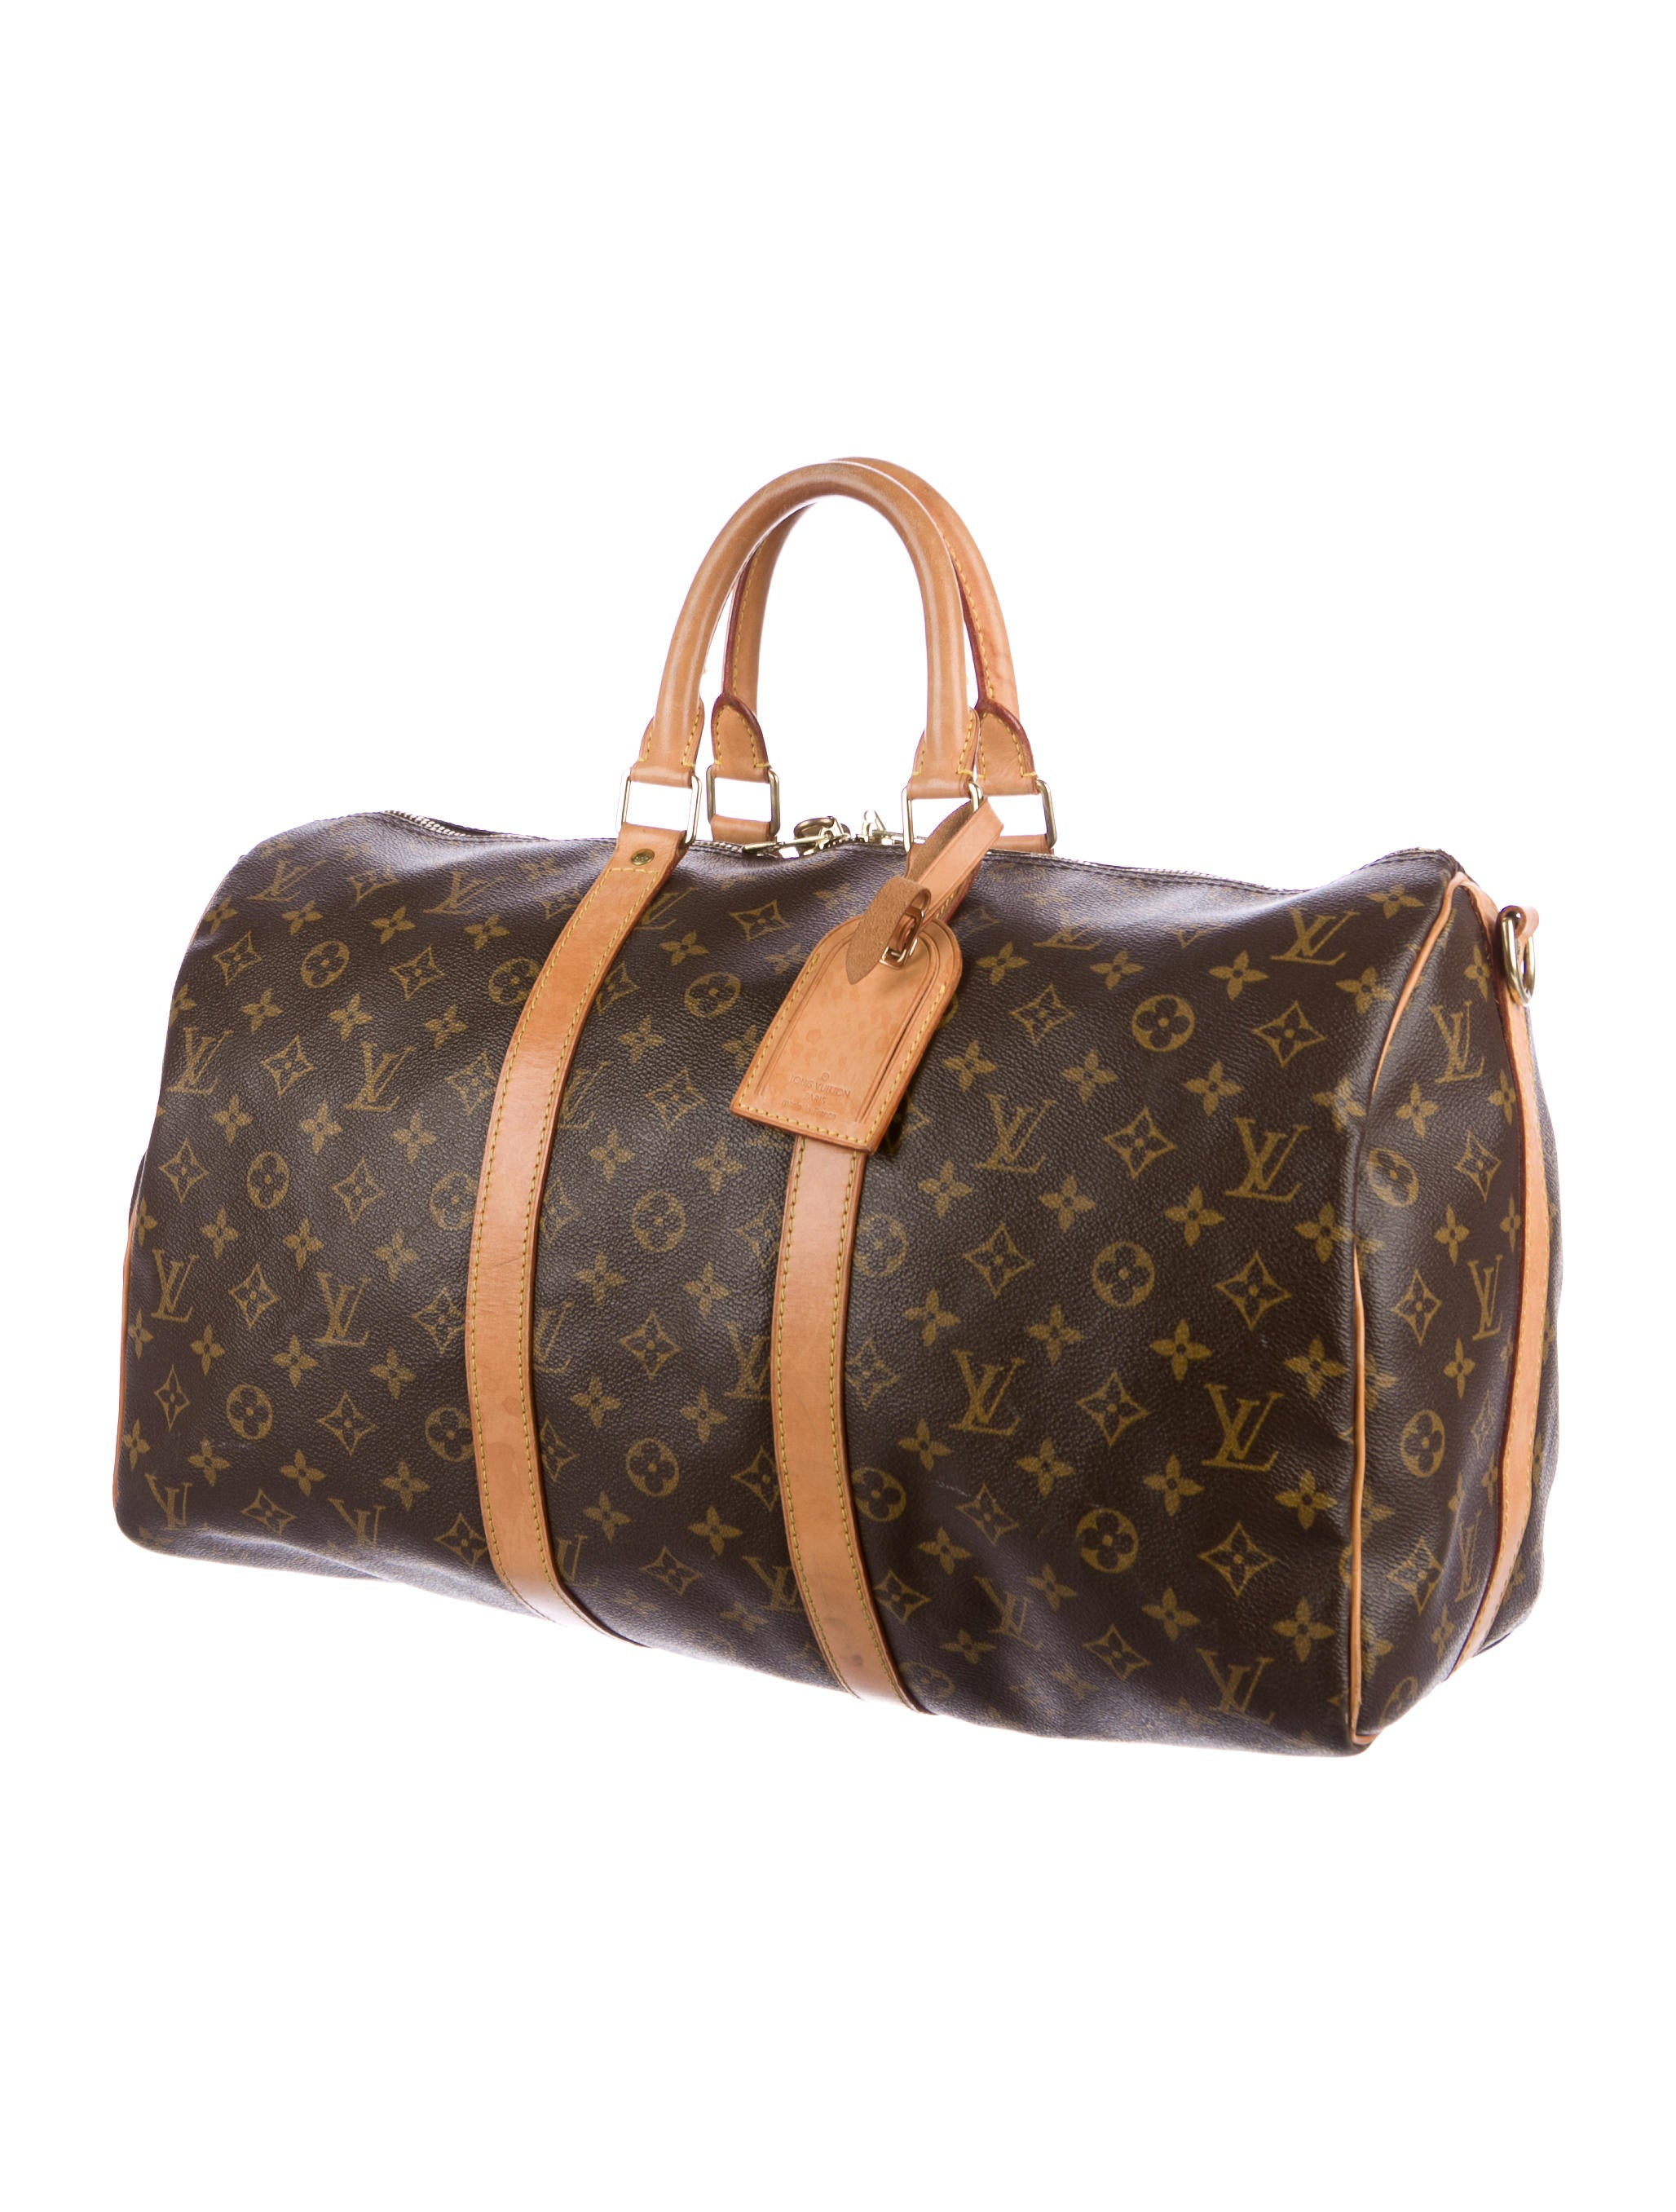 louis vuitton monogram keepall bandouli re 45 bags lou125889 the realreal. Black Bedroom Furniture Sets. Home Design Ideas